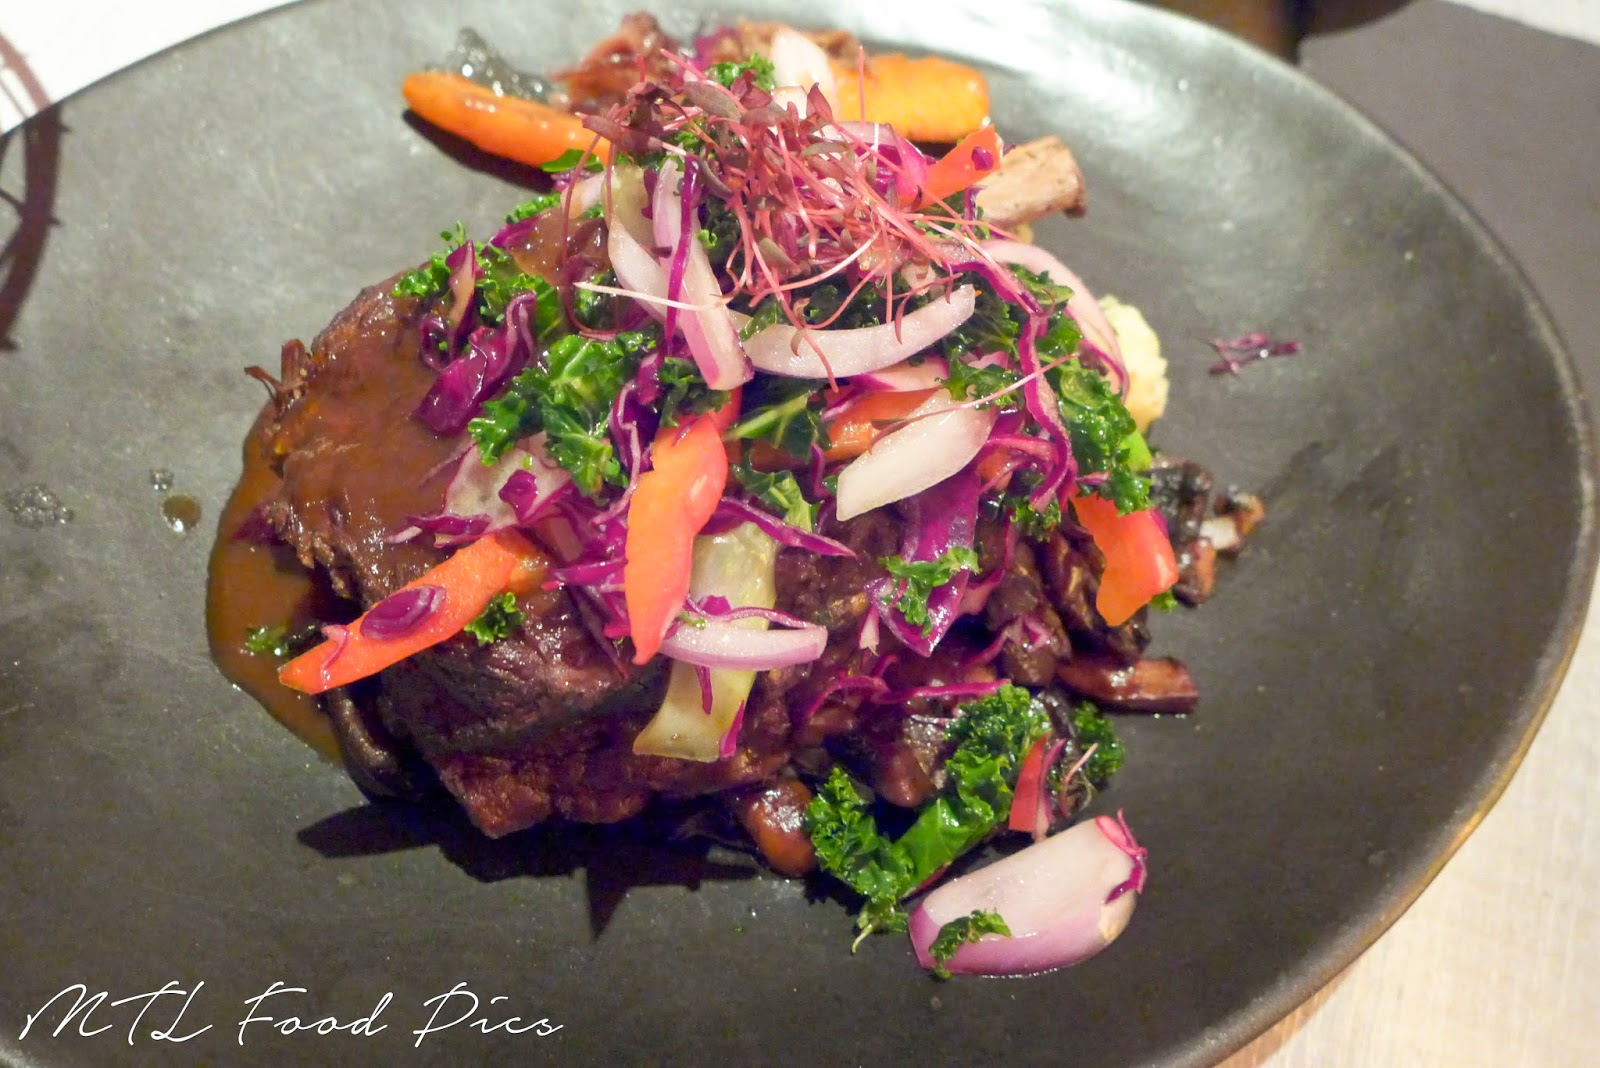 Braised Beef Short Ribs - Das Lokal restaurant